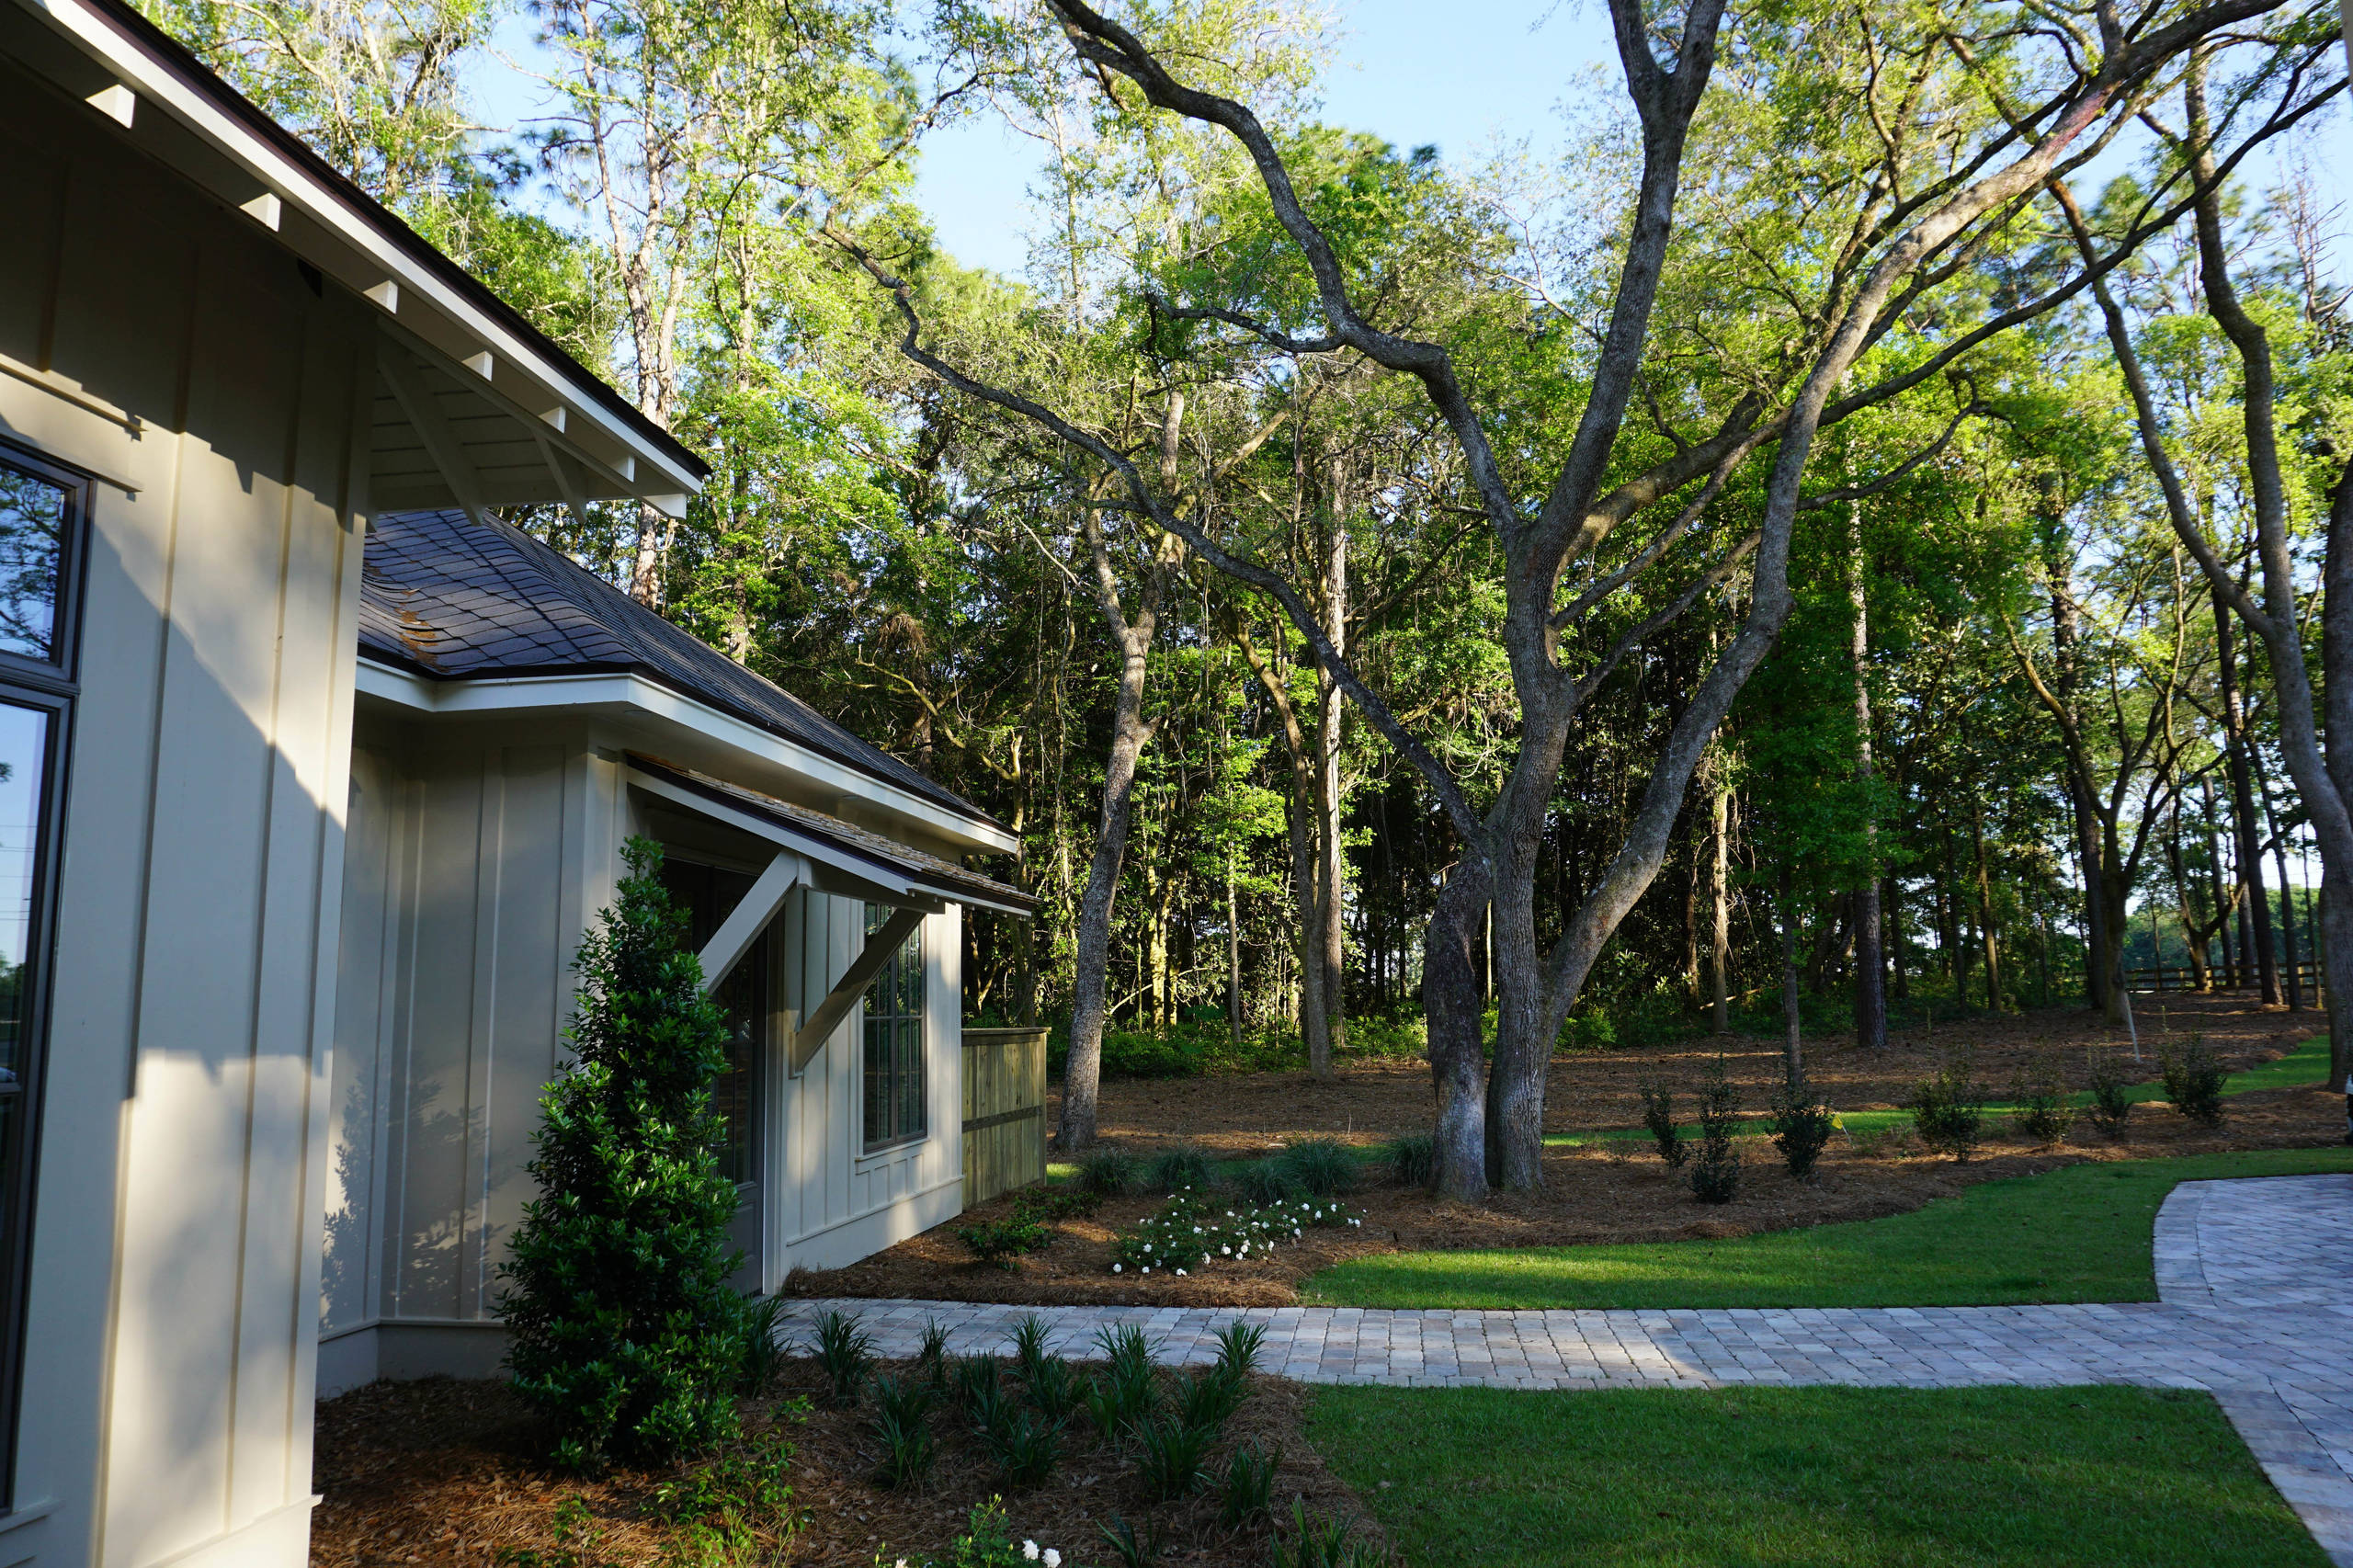 Fairhope Motorcoach Resort